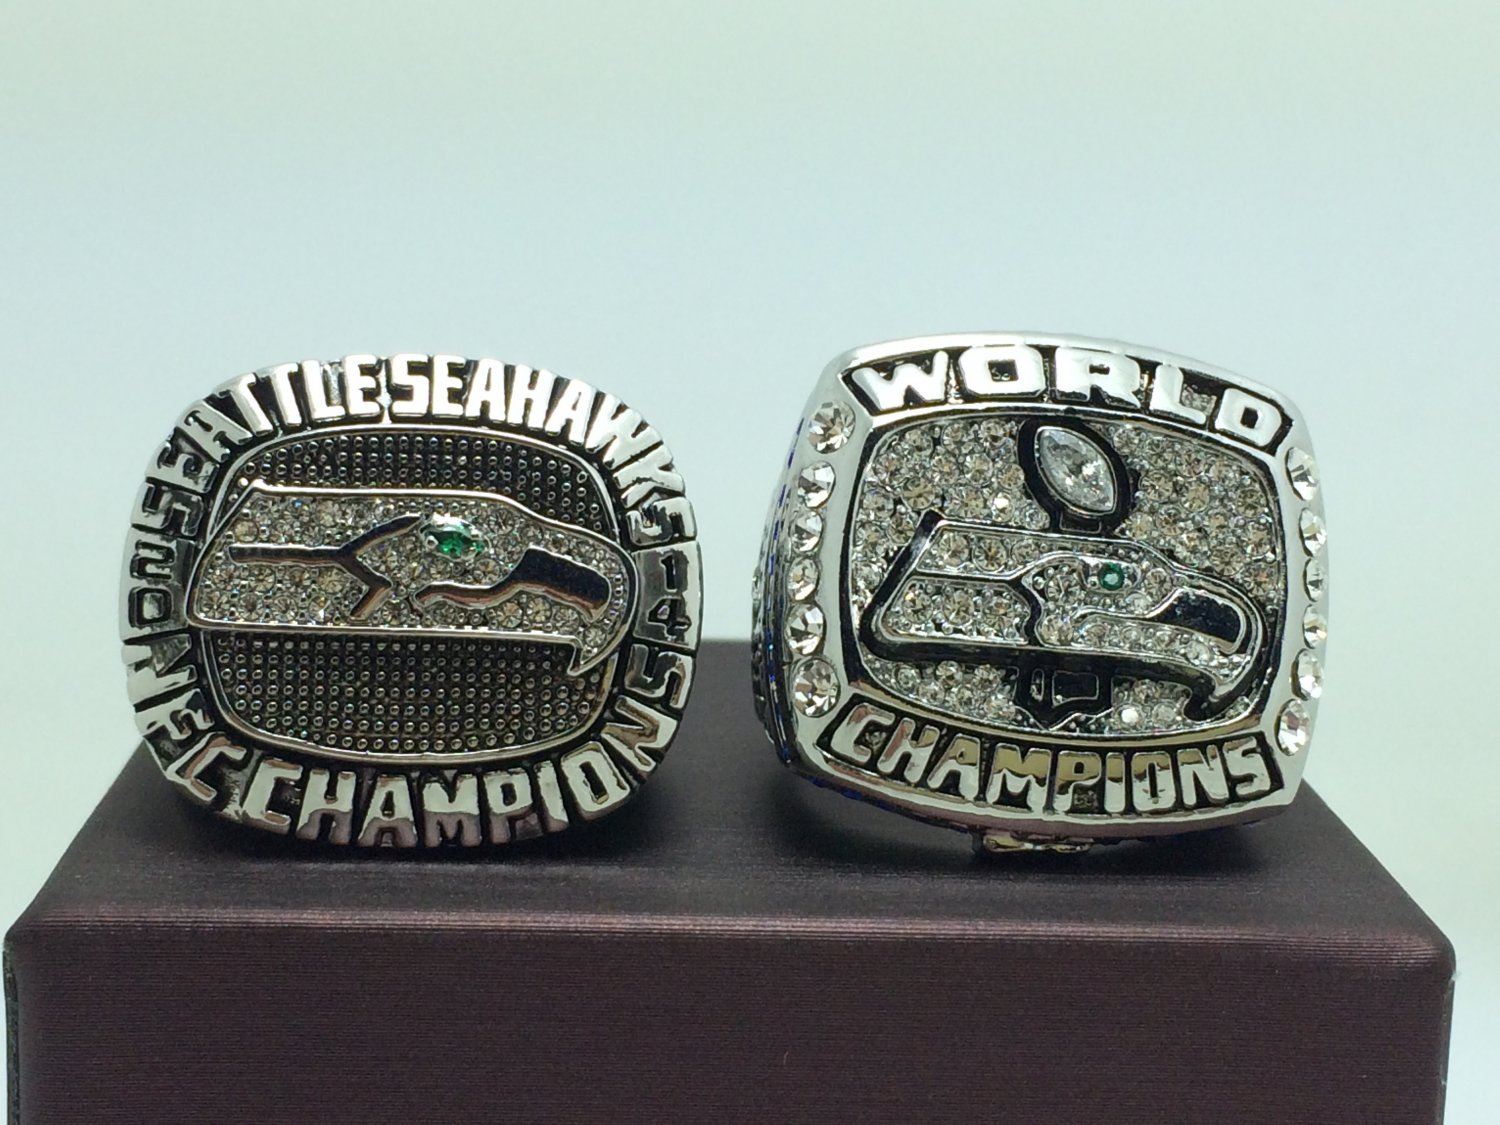 One Set 2PCS 2013 2014 Seattle Seahawks super bowl Championship Ring 11 Size With wooden box